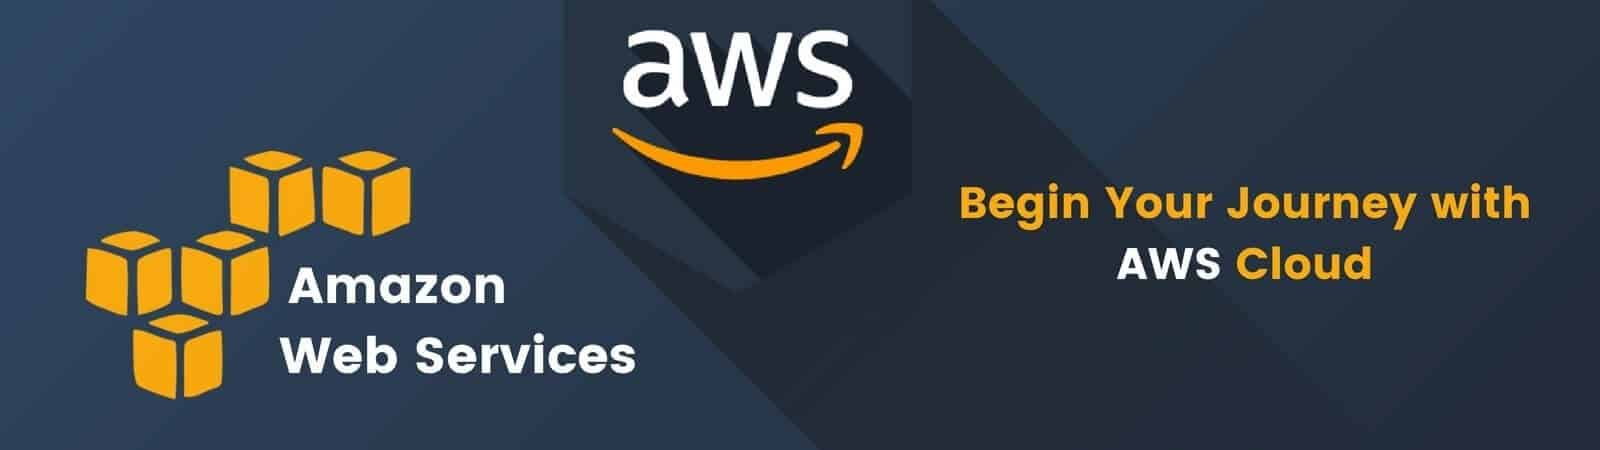 amazon aws training in melbourne aws training in melbourne AWS Training in Melbourne amazon aws training in melbourne 5